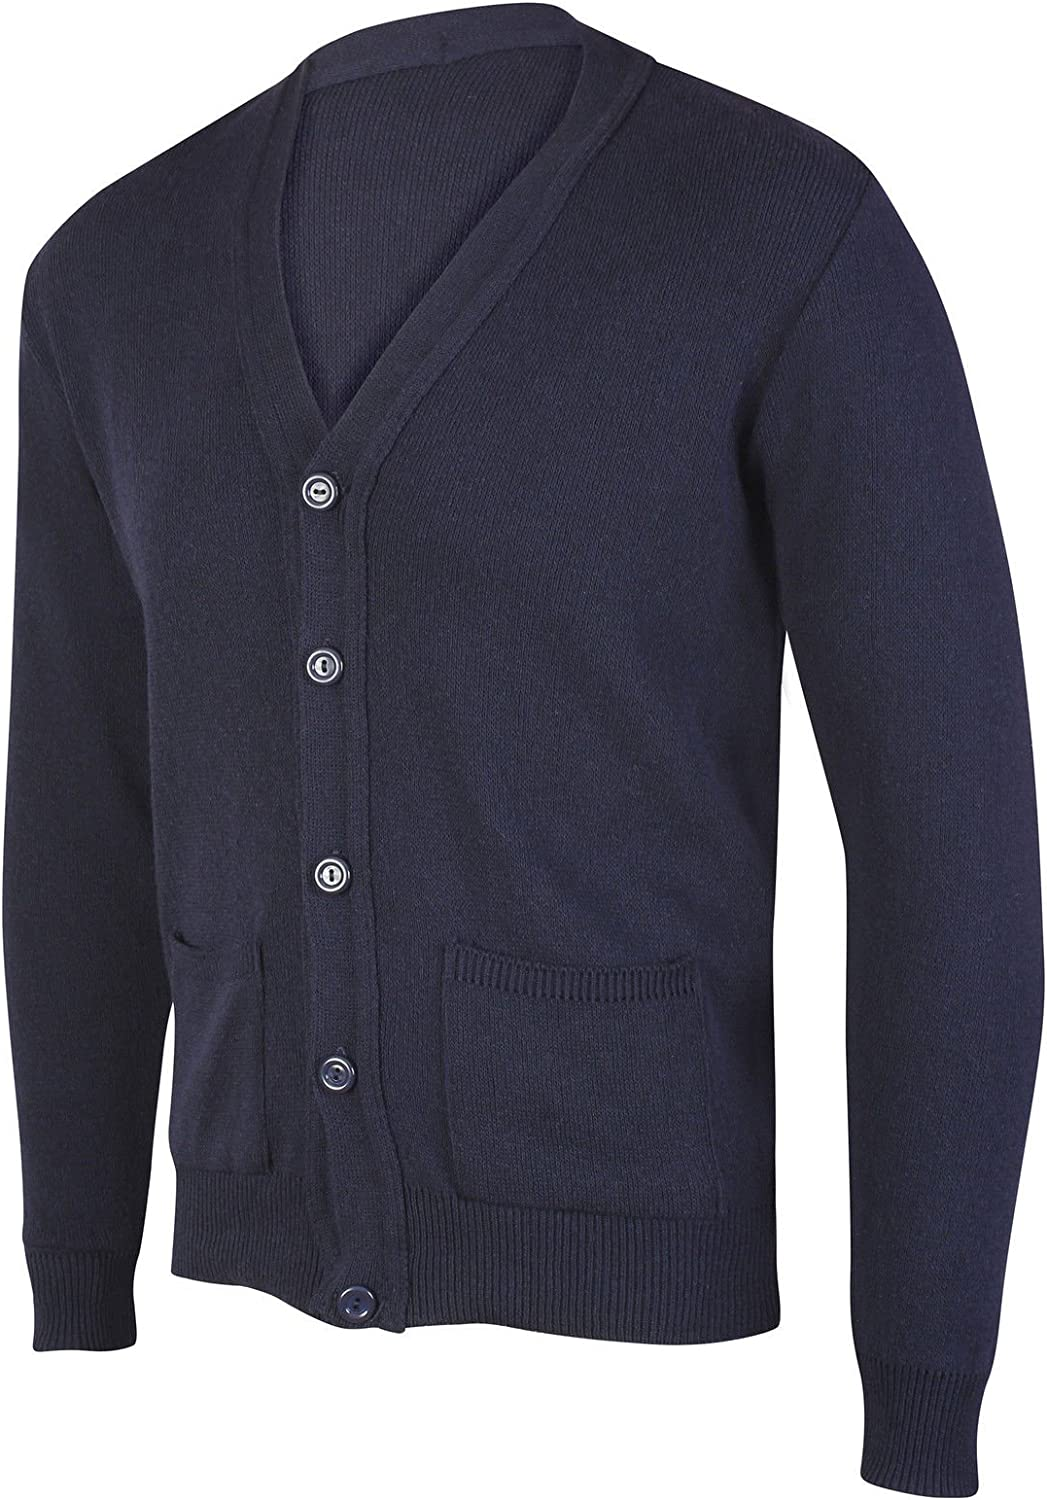 JBC Collection Mens Long Sleeve V Neck Button Front Cardigan Smart Casual Full Buttoned Cardi Jumper Plain Colour Black Navy Grey Beige